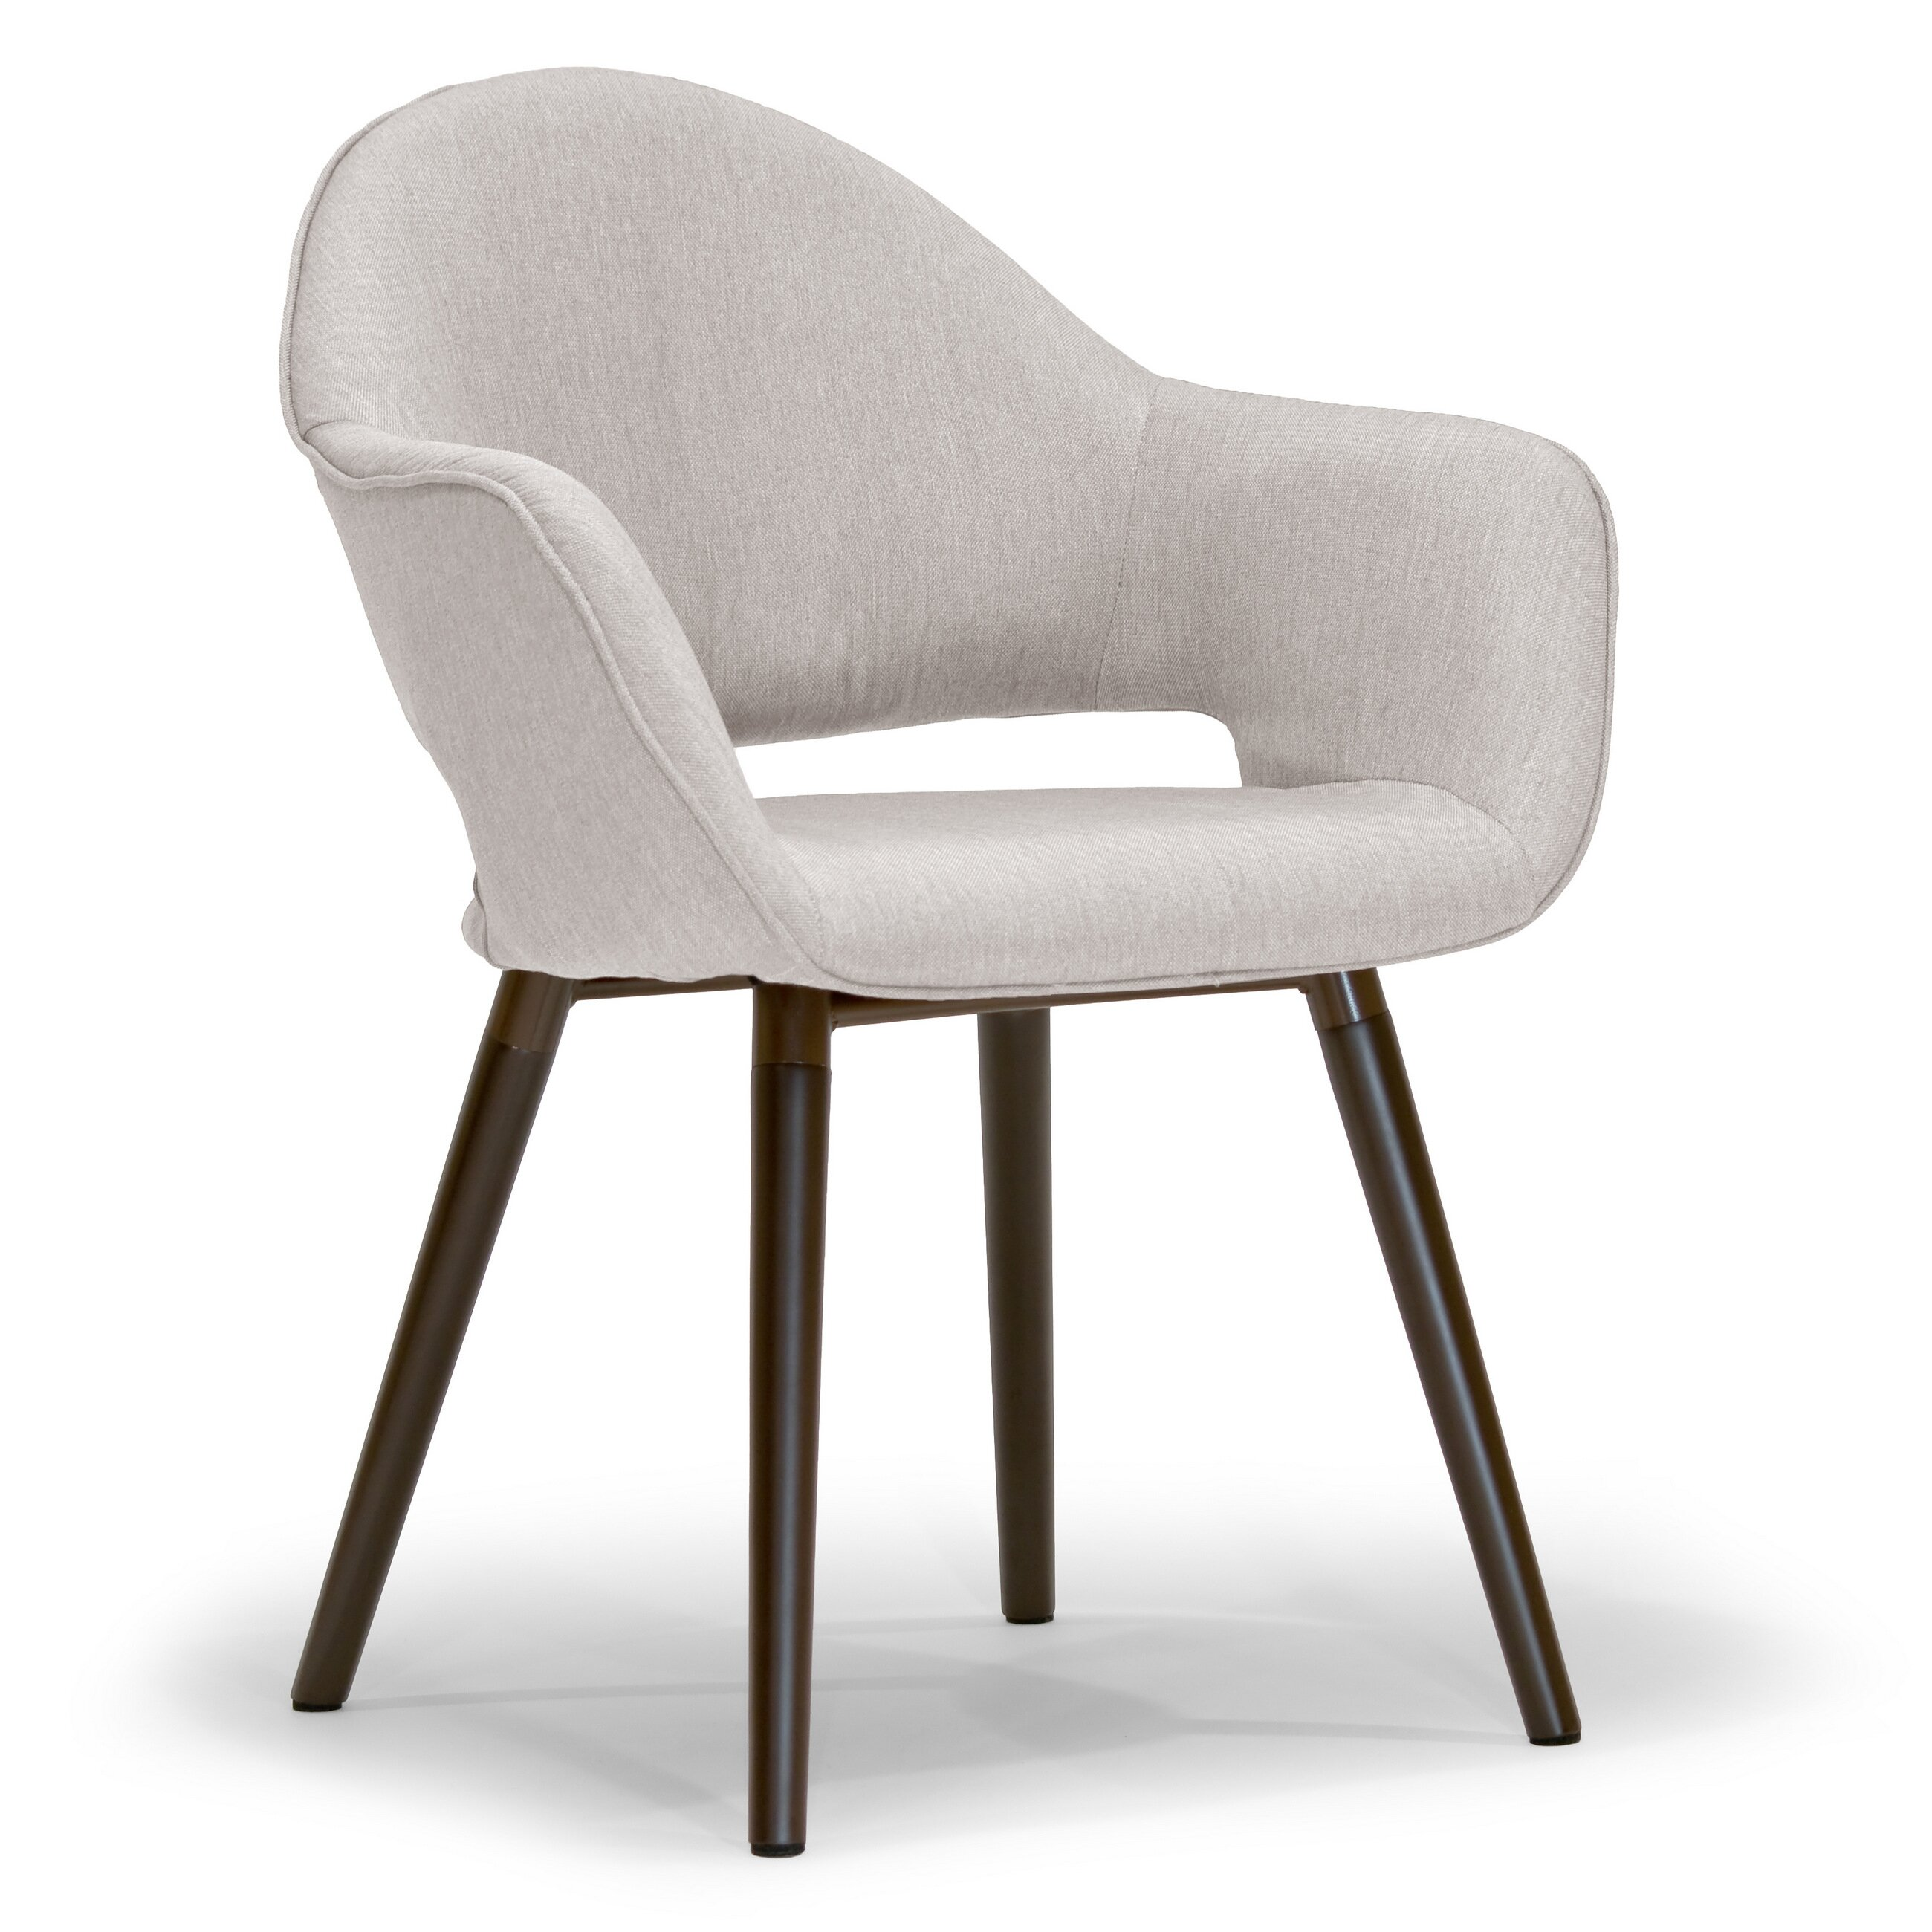 Glamour Home Decor: Glamour Home Decor Adel Arm Chair